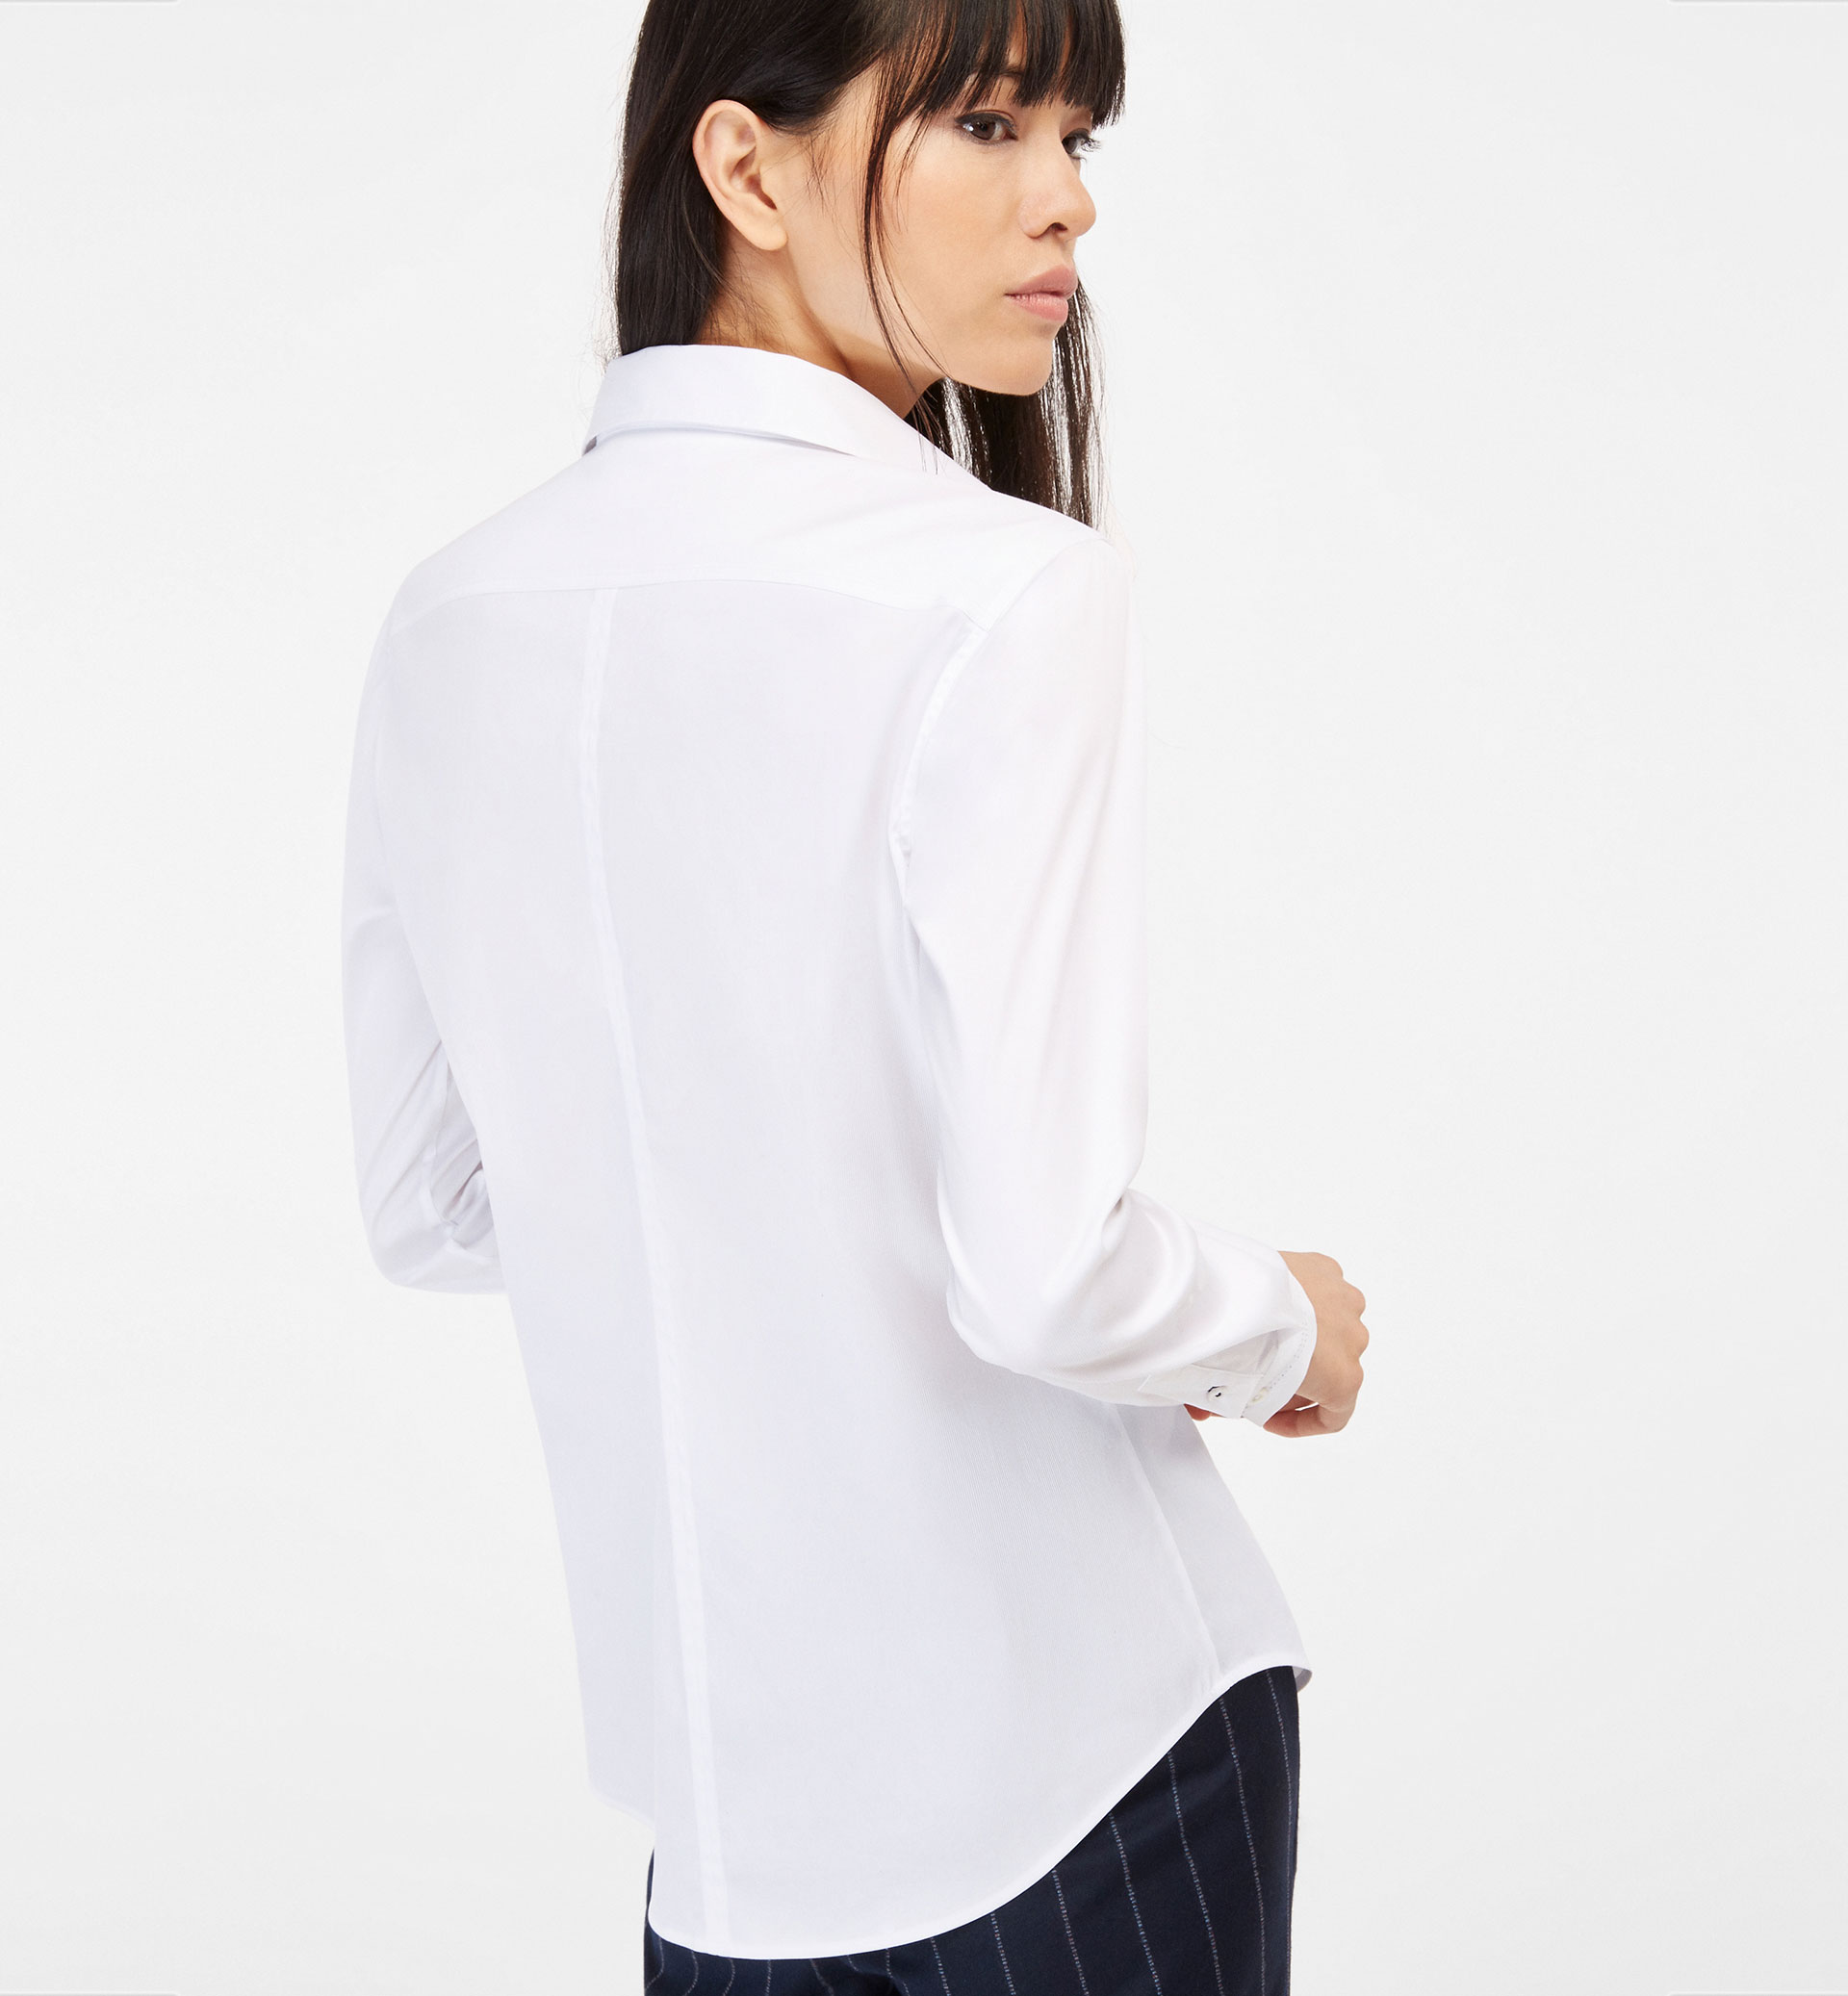 NEEDLECORD STRETCH SHIRT